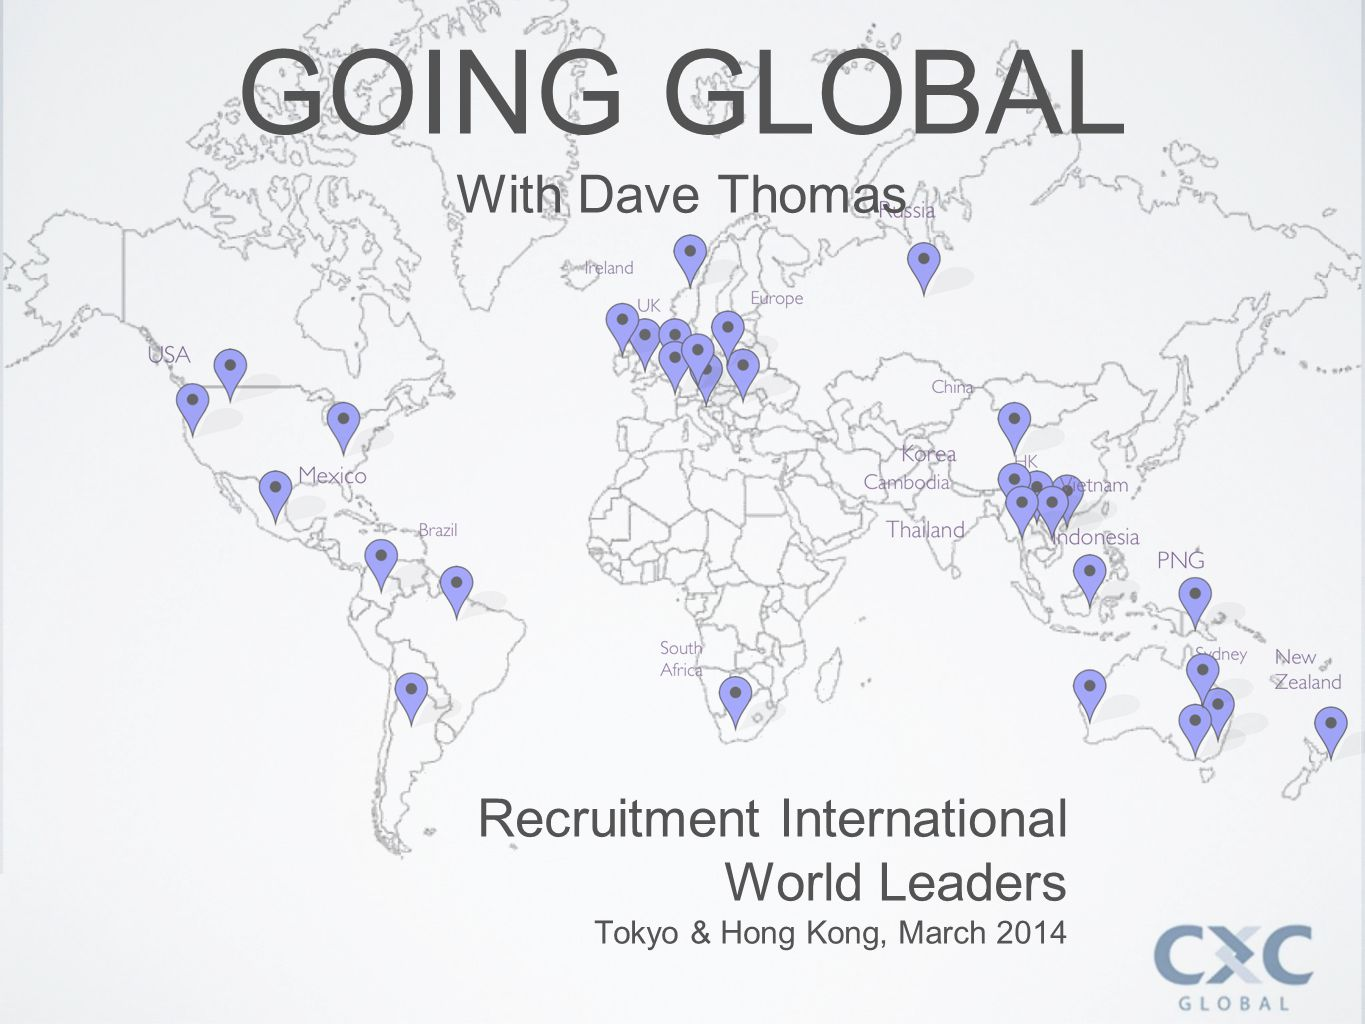 GOING GLOBAL With Dave Thomas Recruitment International World Leaders Tokyo & Hong Kong, March 2014